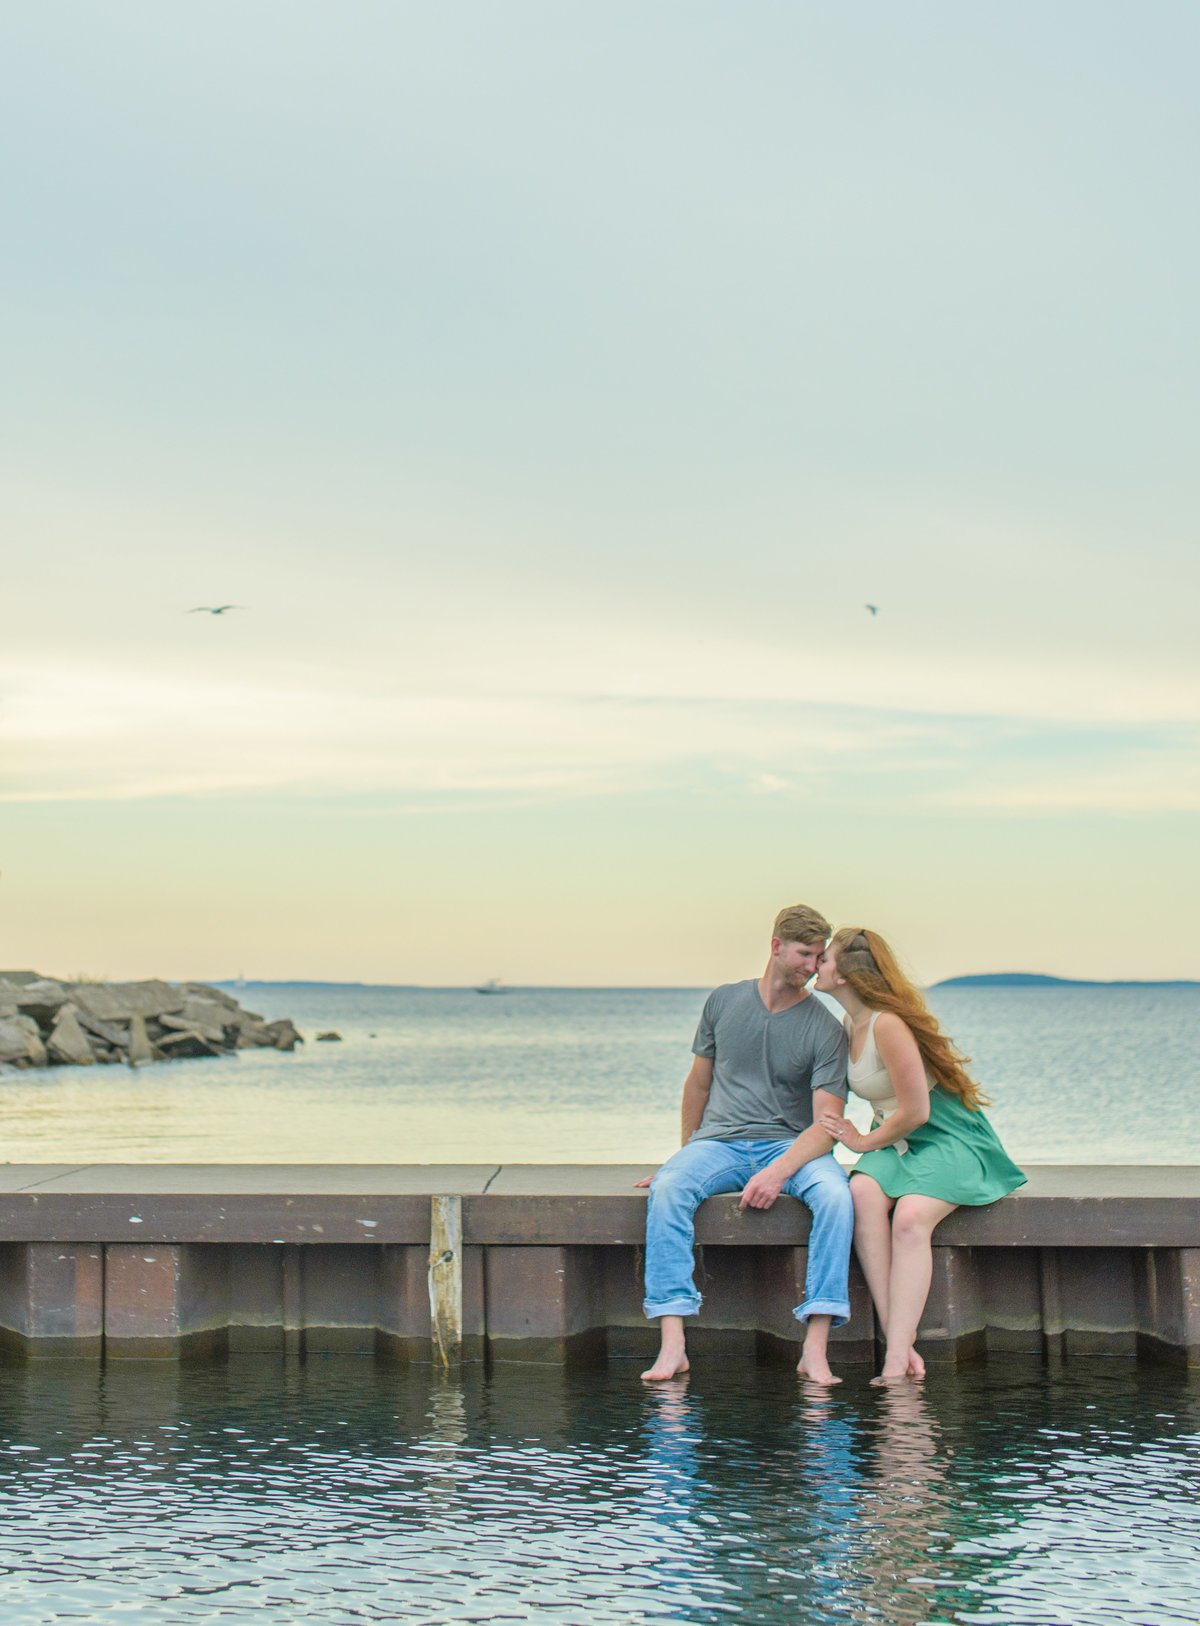 Morgaen + Greg | Oden and Janelle Photography 2016 |JJH_9403|10